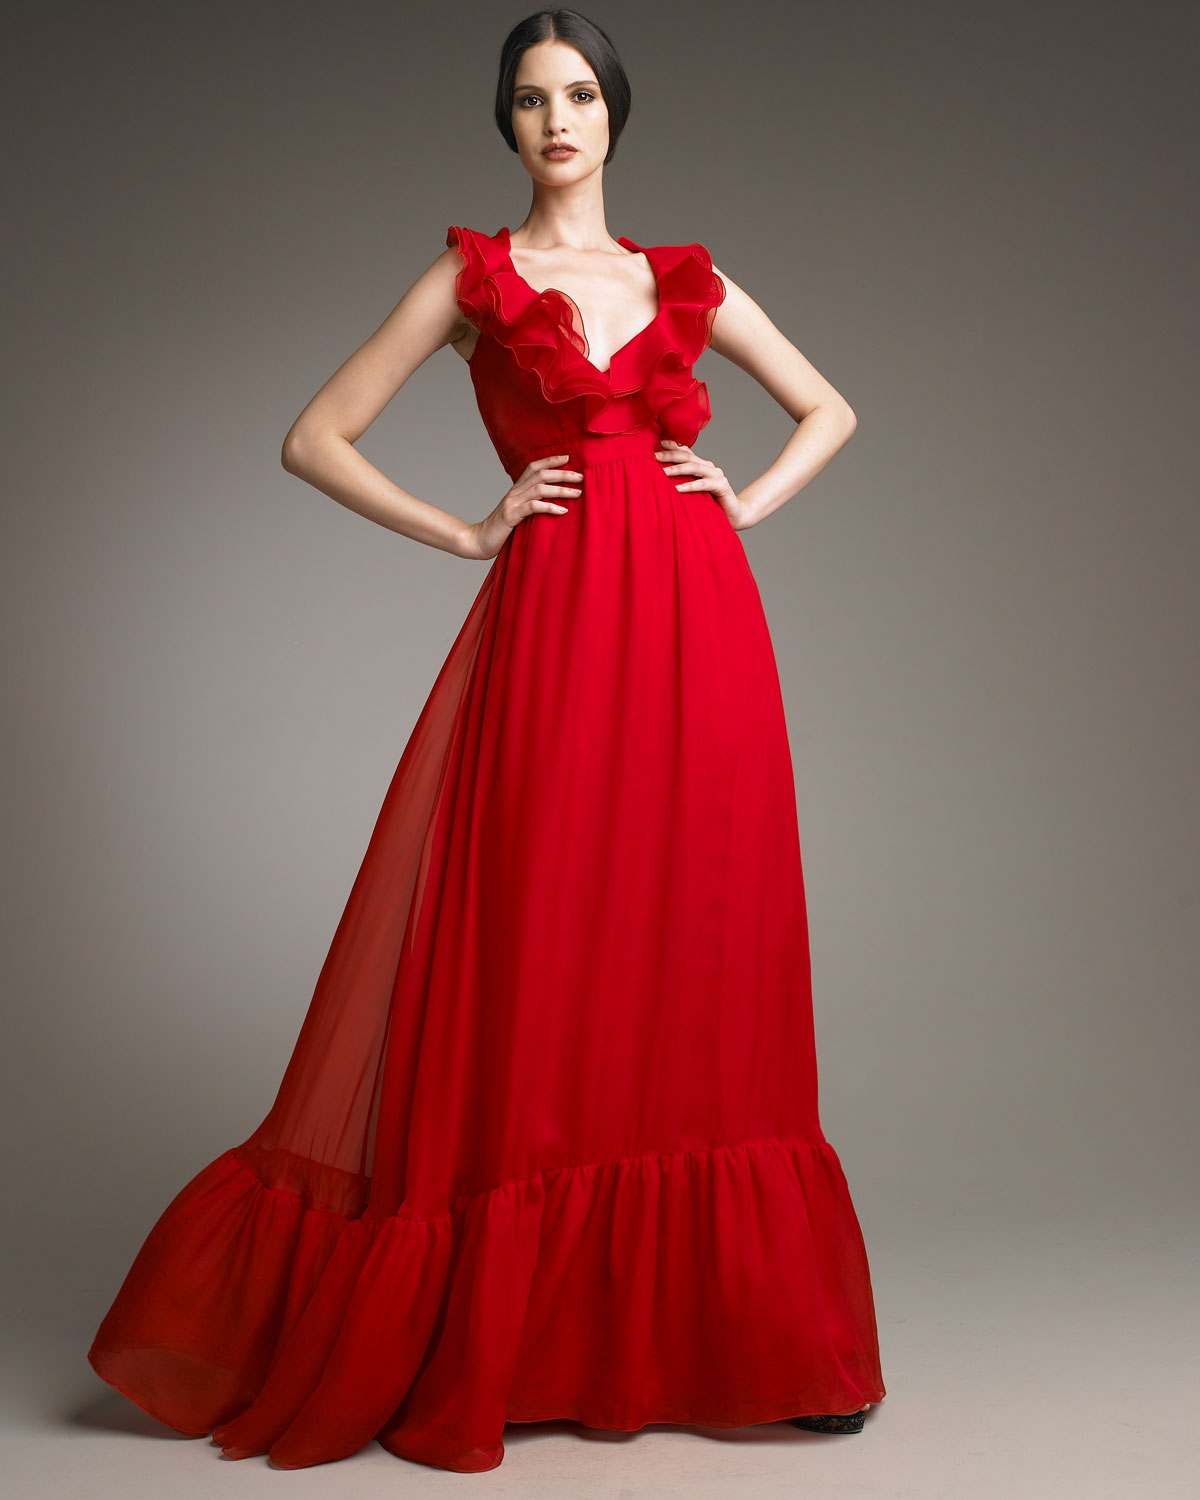 Lyst Valentino Bow Waist Voulant Gown In Red